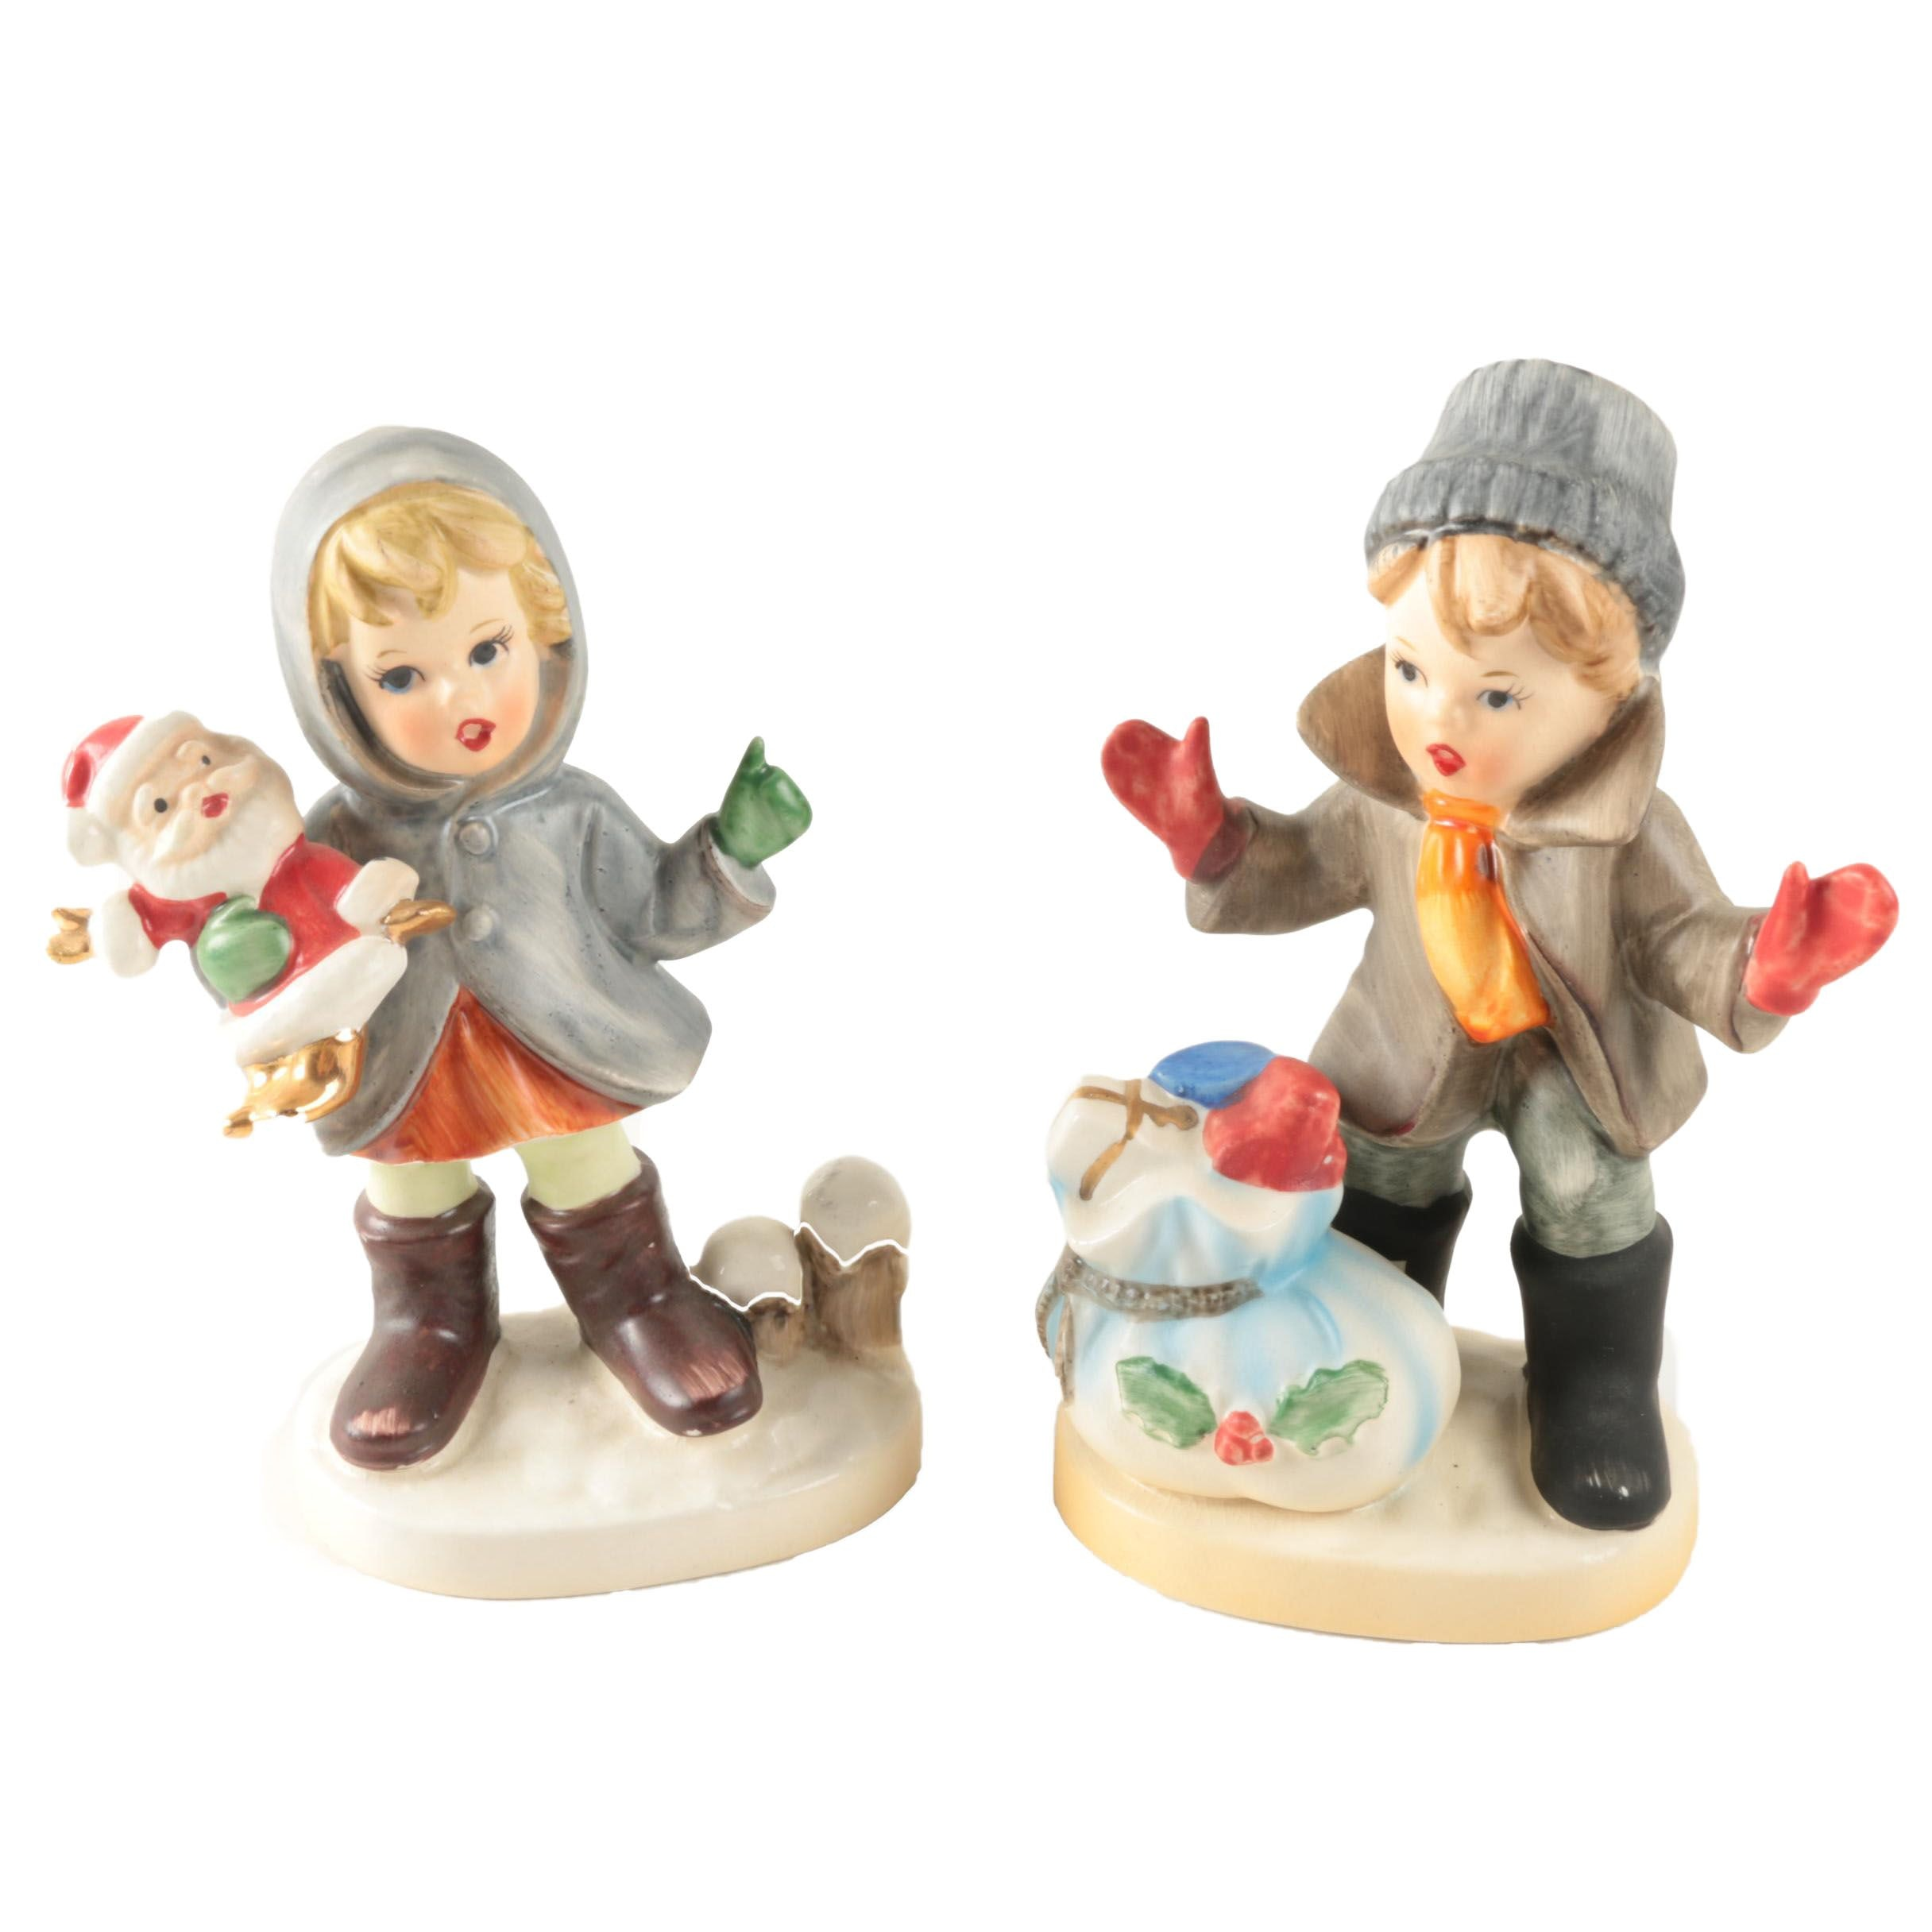 Pair of Napcoware Holiday Figurines